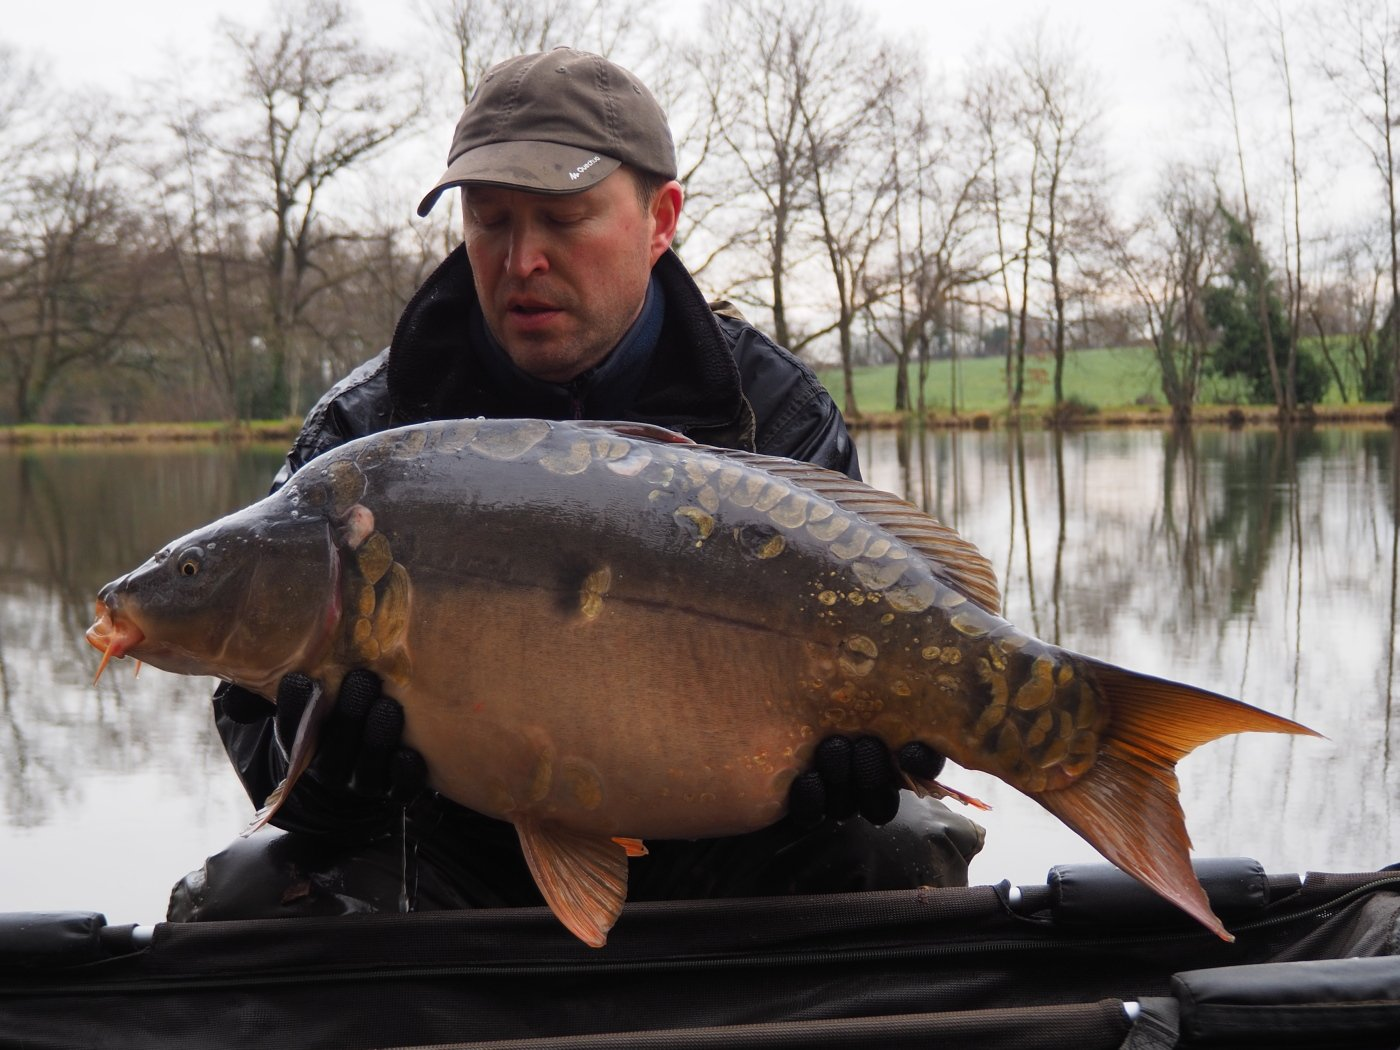 New 29lbs 8oz mirror carp